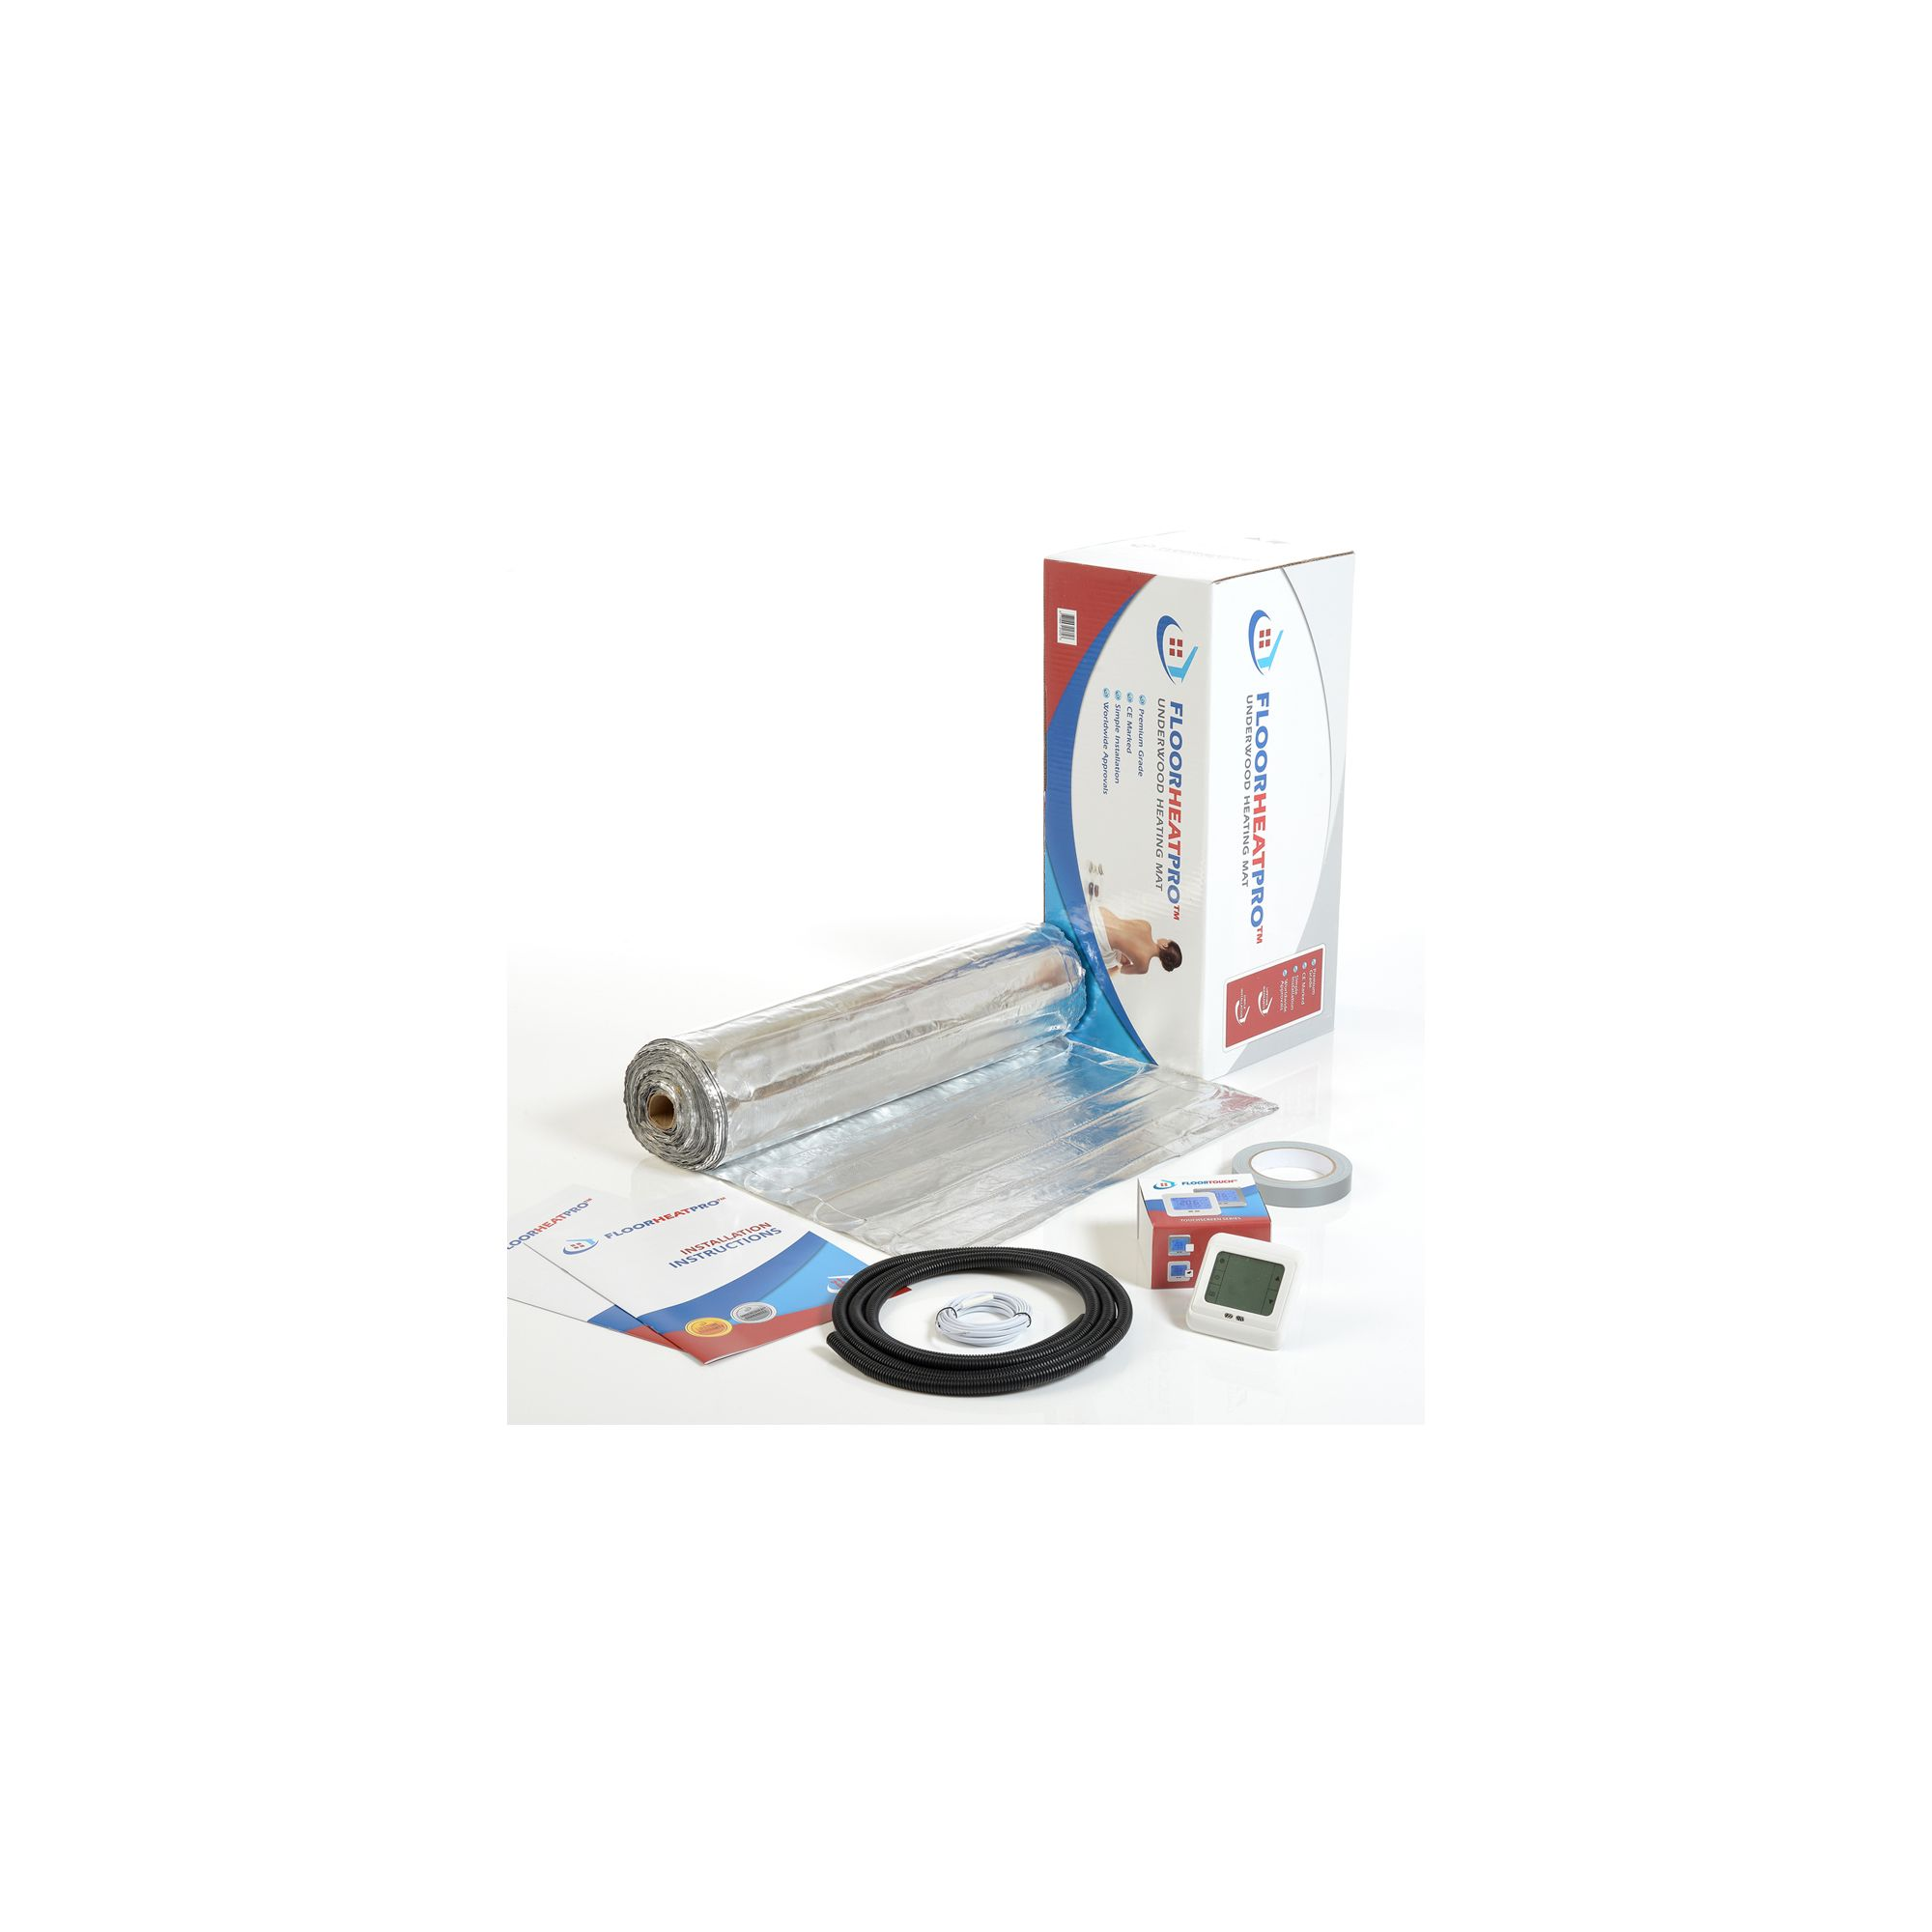 10.0 m2 - Underfloor Electric Heating Kit - Laminate at Tesco Direct